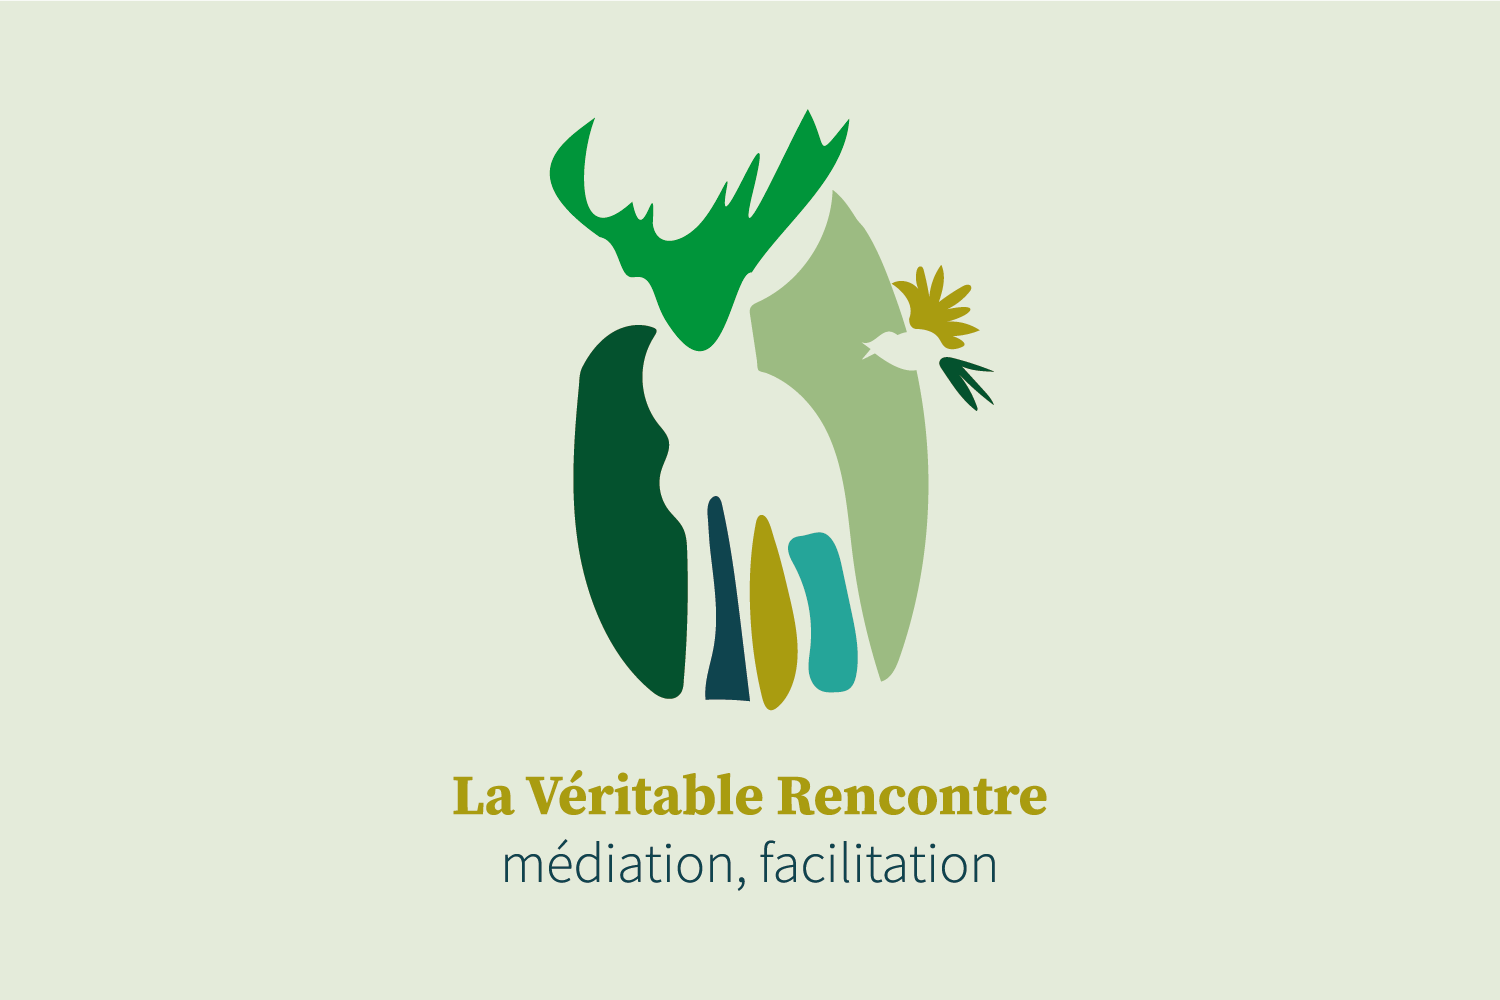 crabgraphic-LaVeritableRencontre-logo